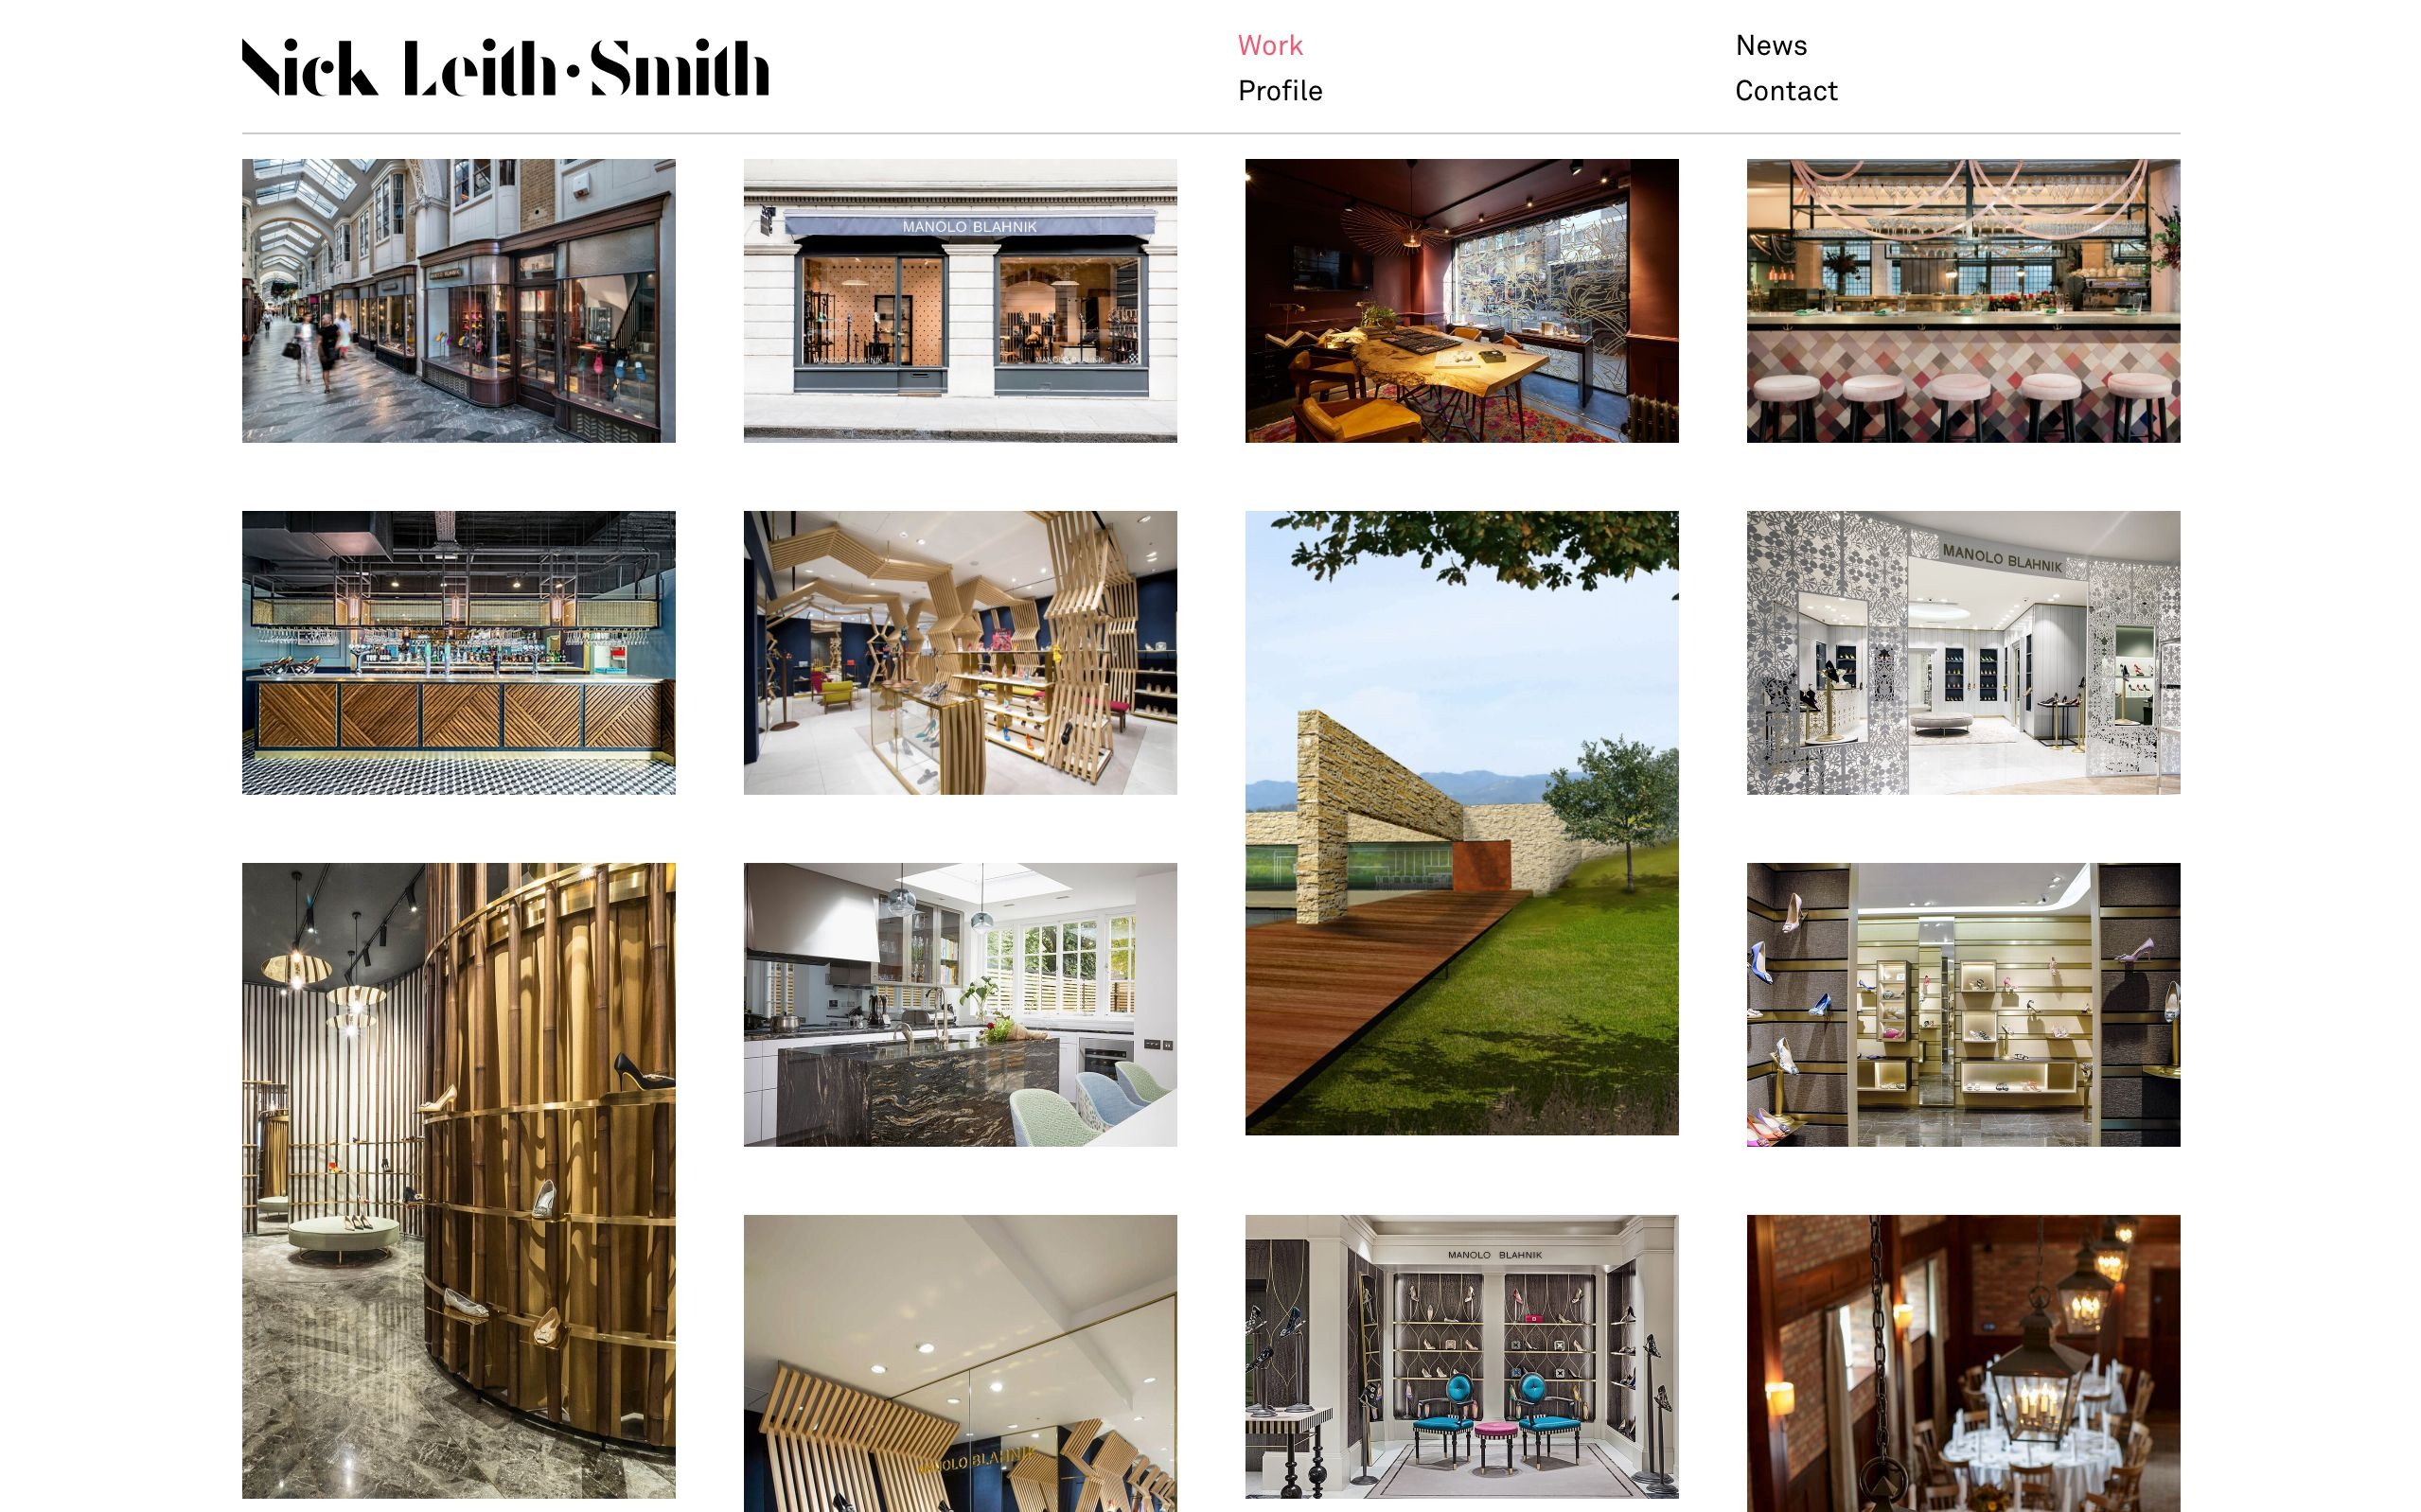 best architecture firm websites. nick leith smith